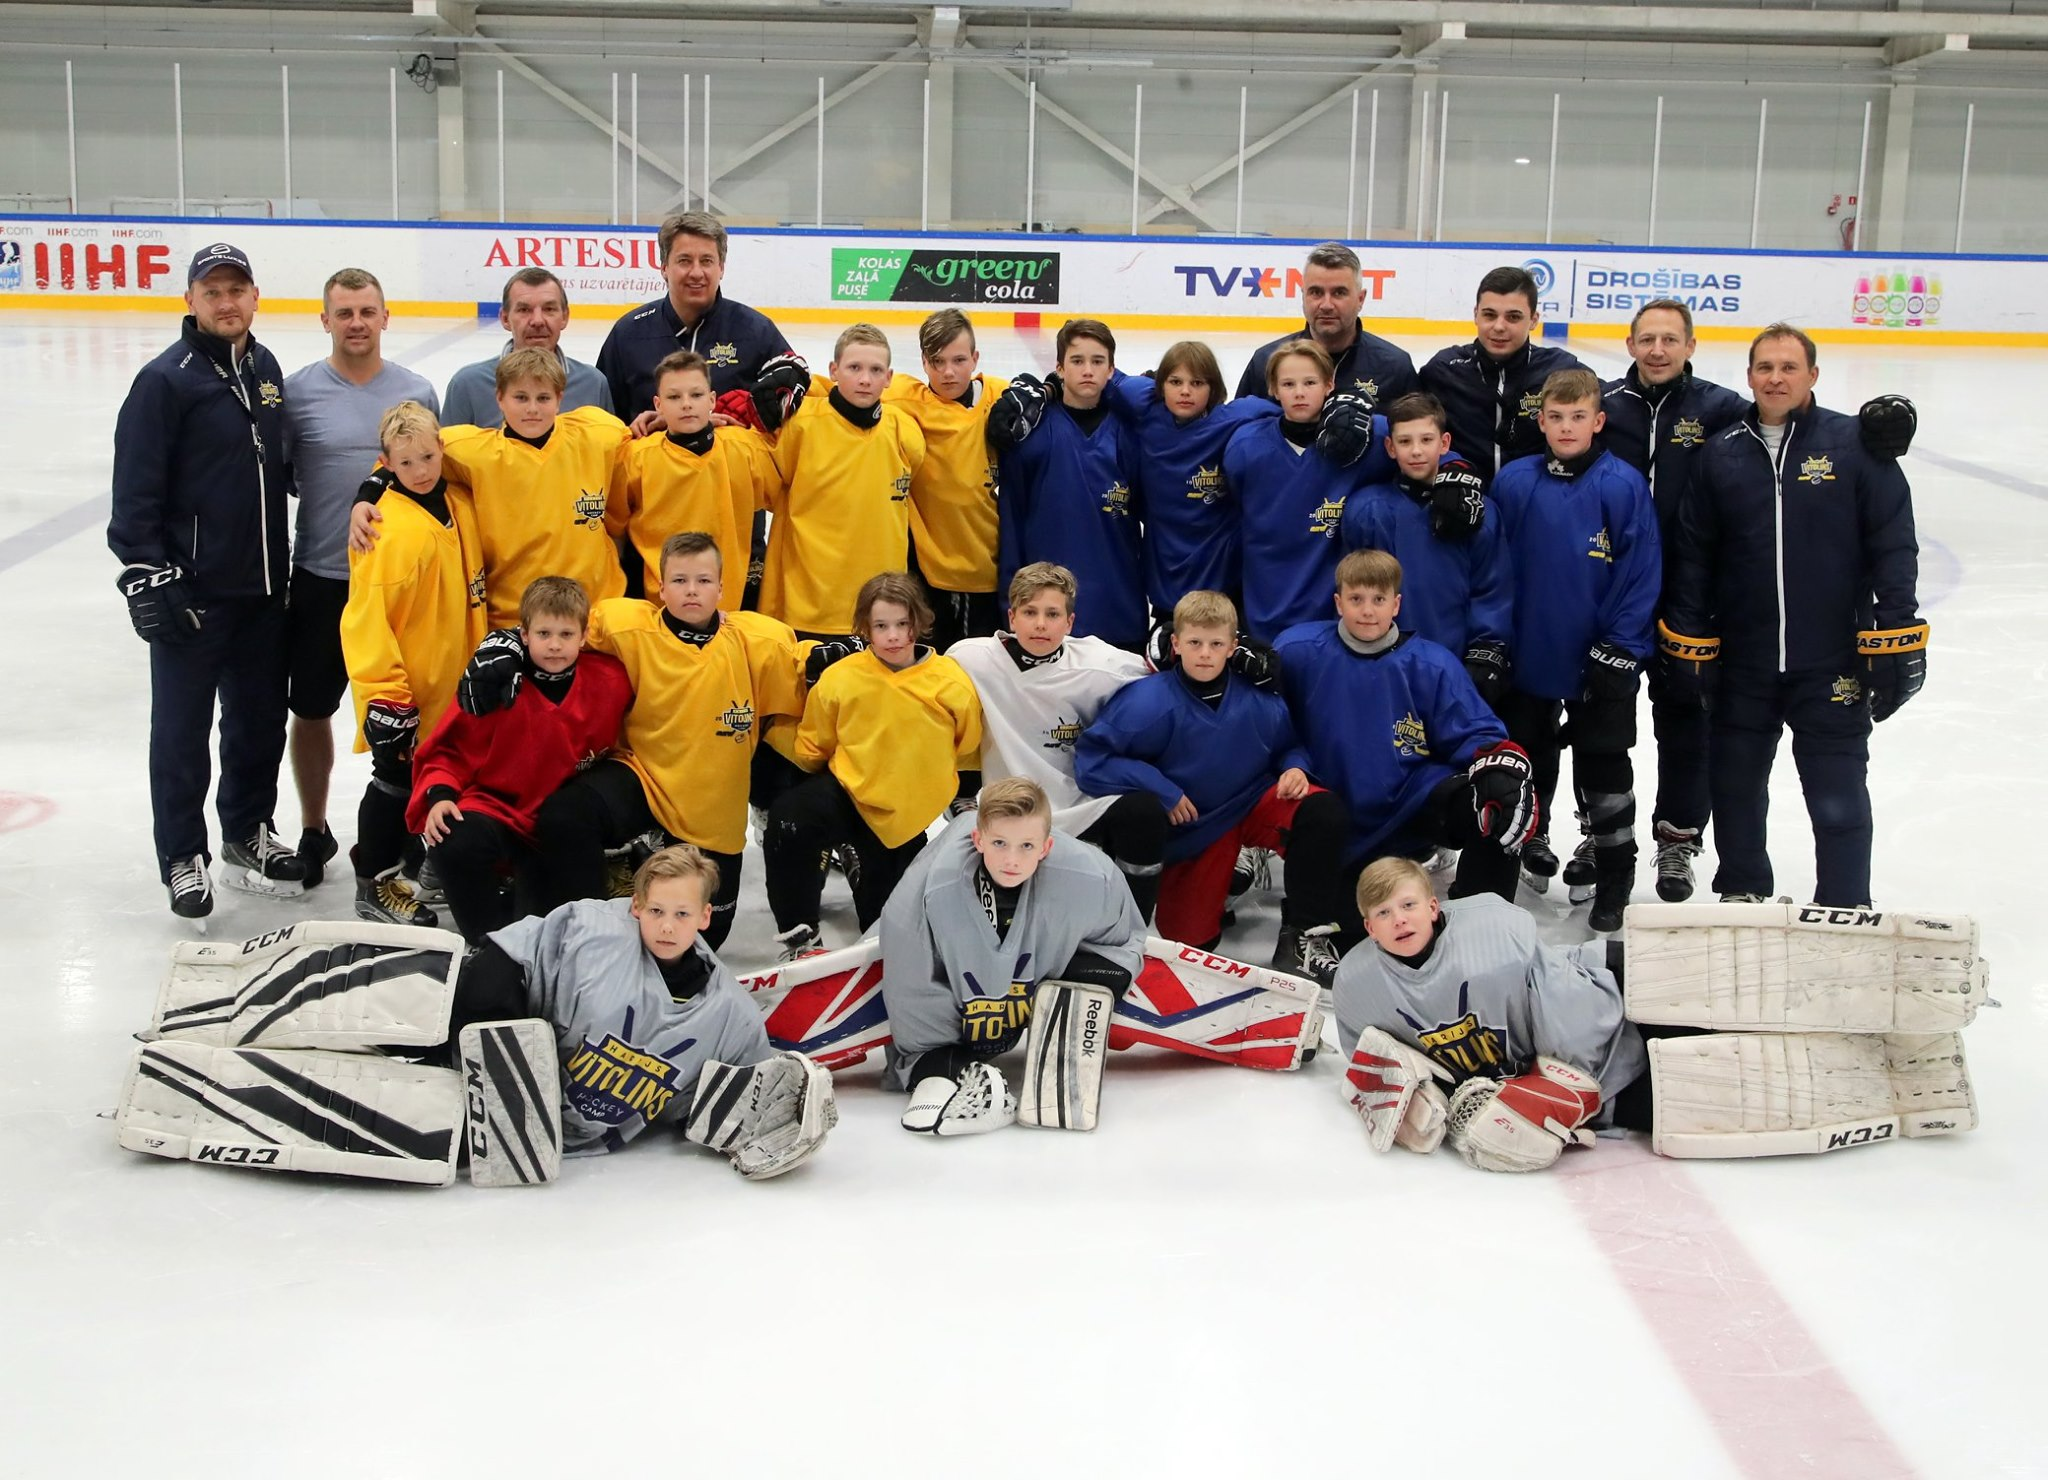 On June 2020 the second Harijs Vītoliņš Ice Hockey camp will take place